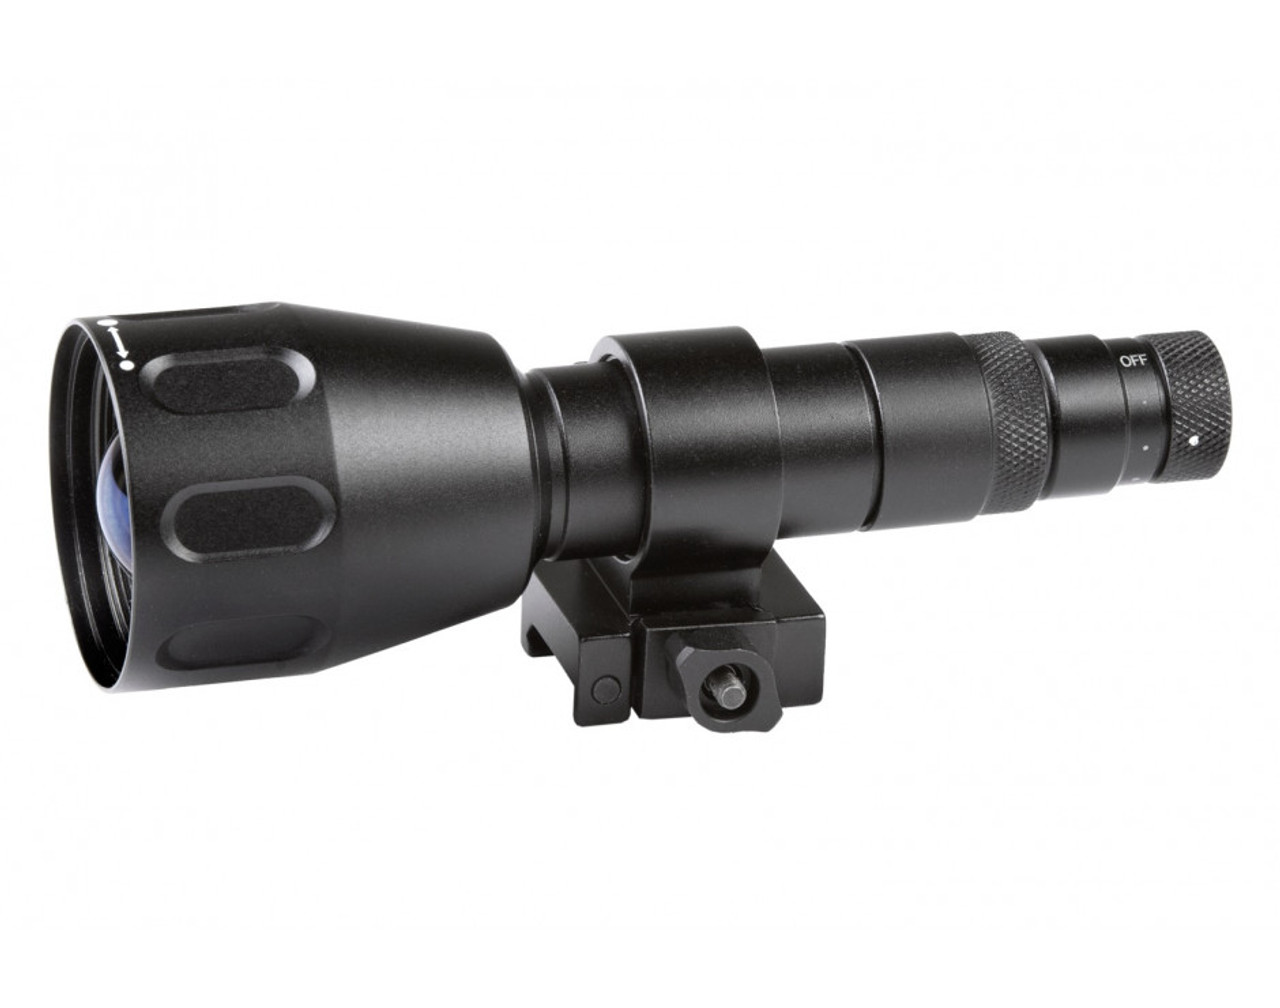 AGM Sioux940 Long-Range Infrared Illuminator comes included with Rechargeable Battery and Charger (501SIOUX940IR1)